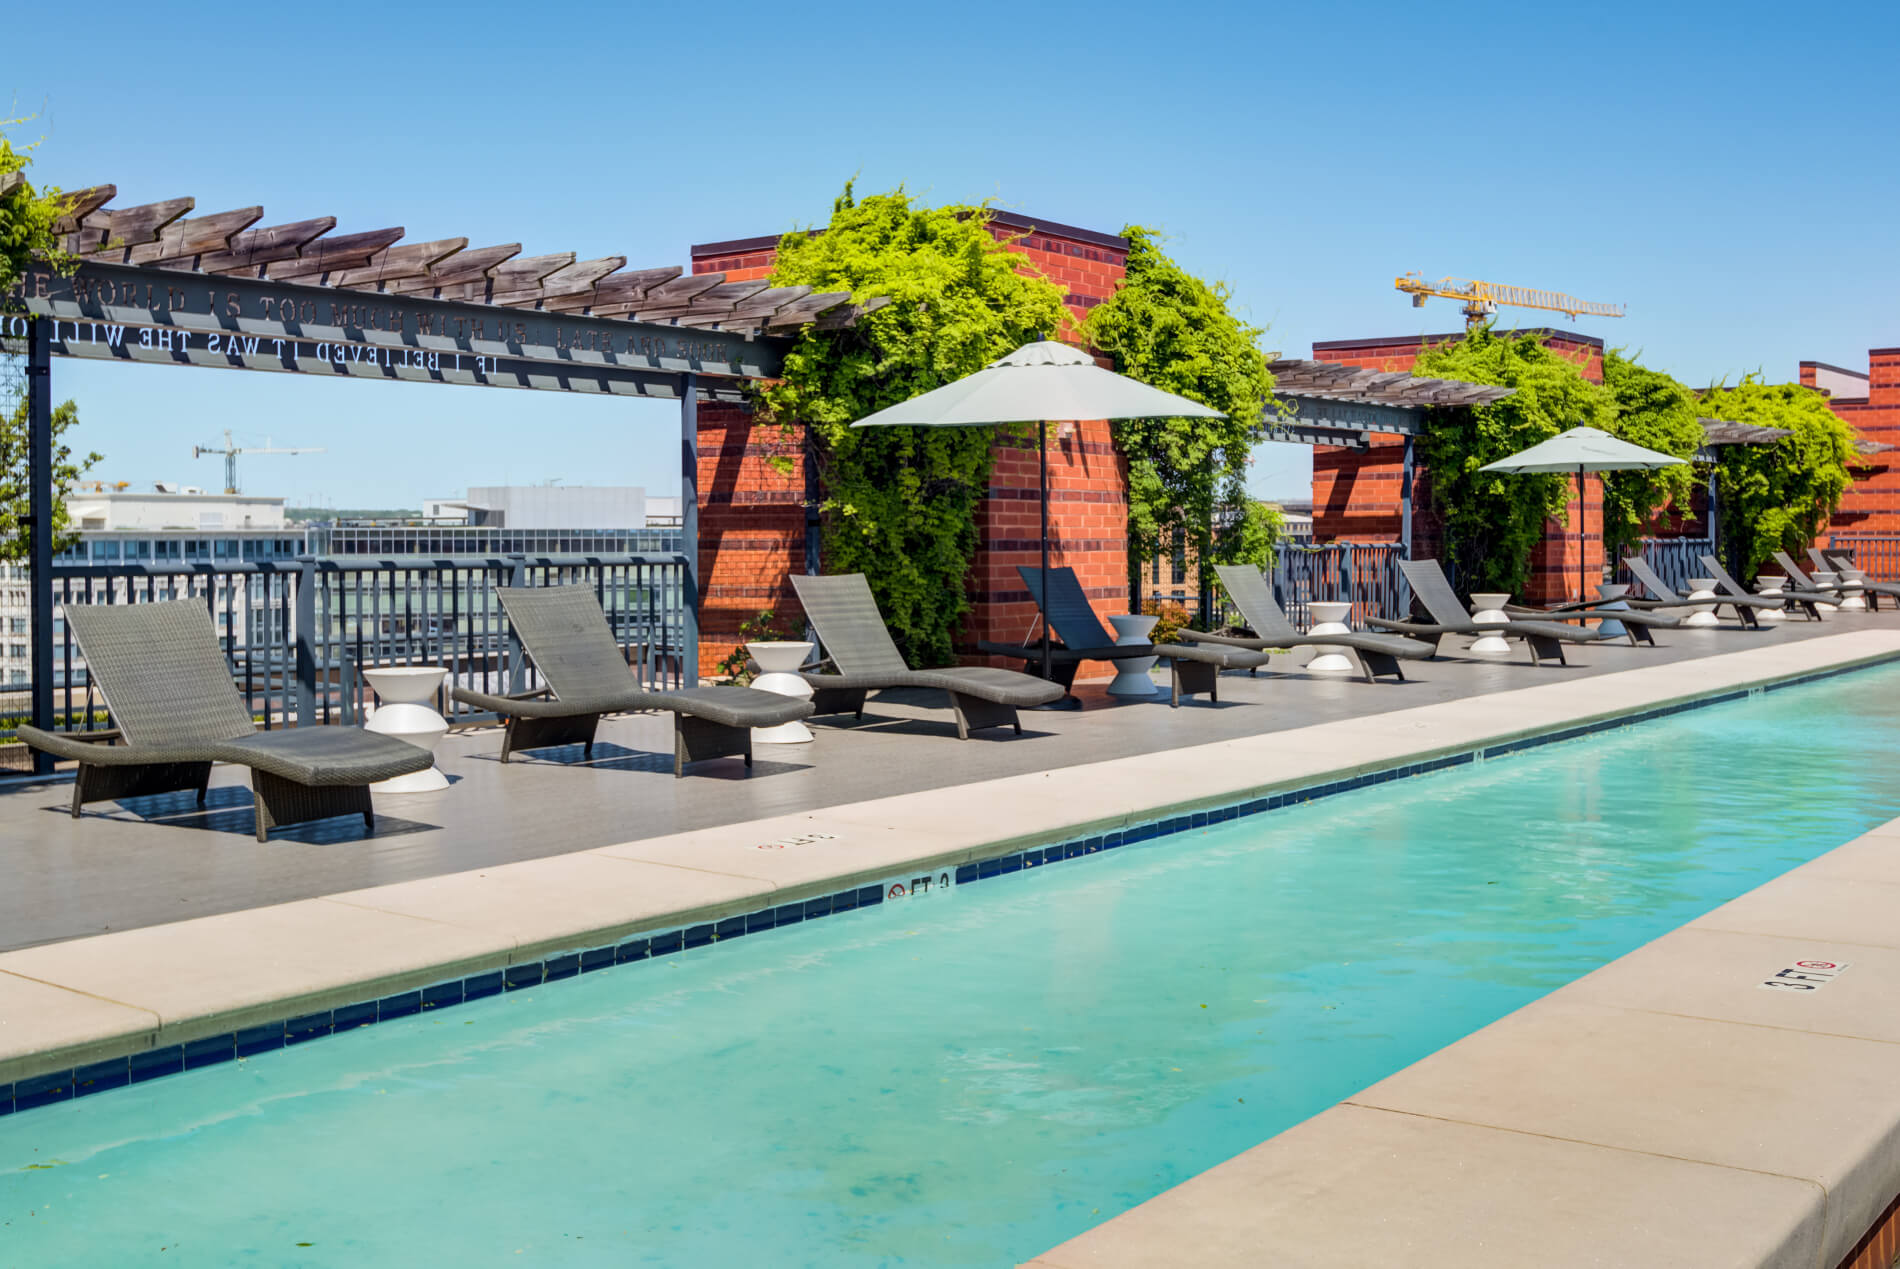 Pool with row of chaise lounge chairs and side tables